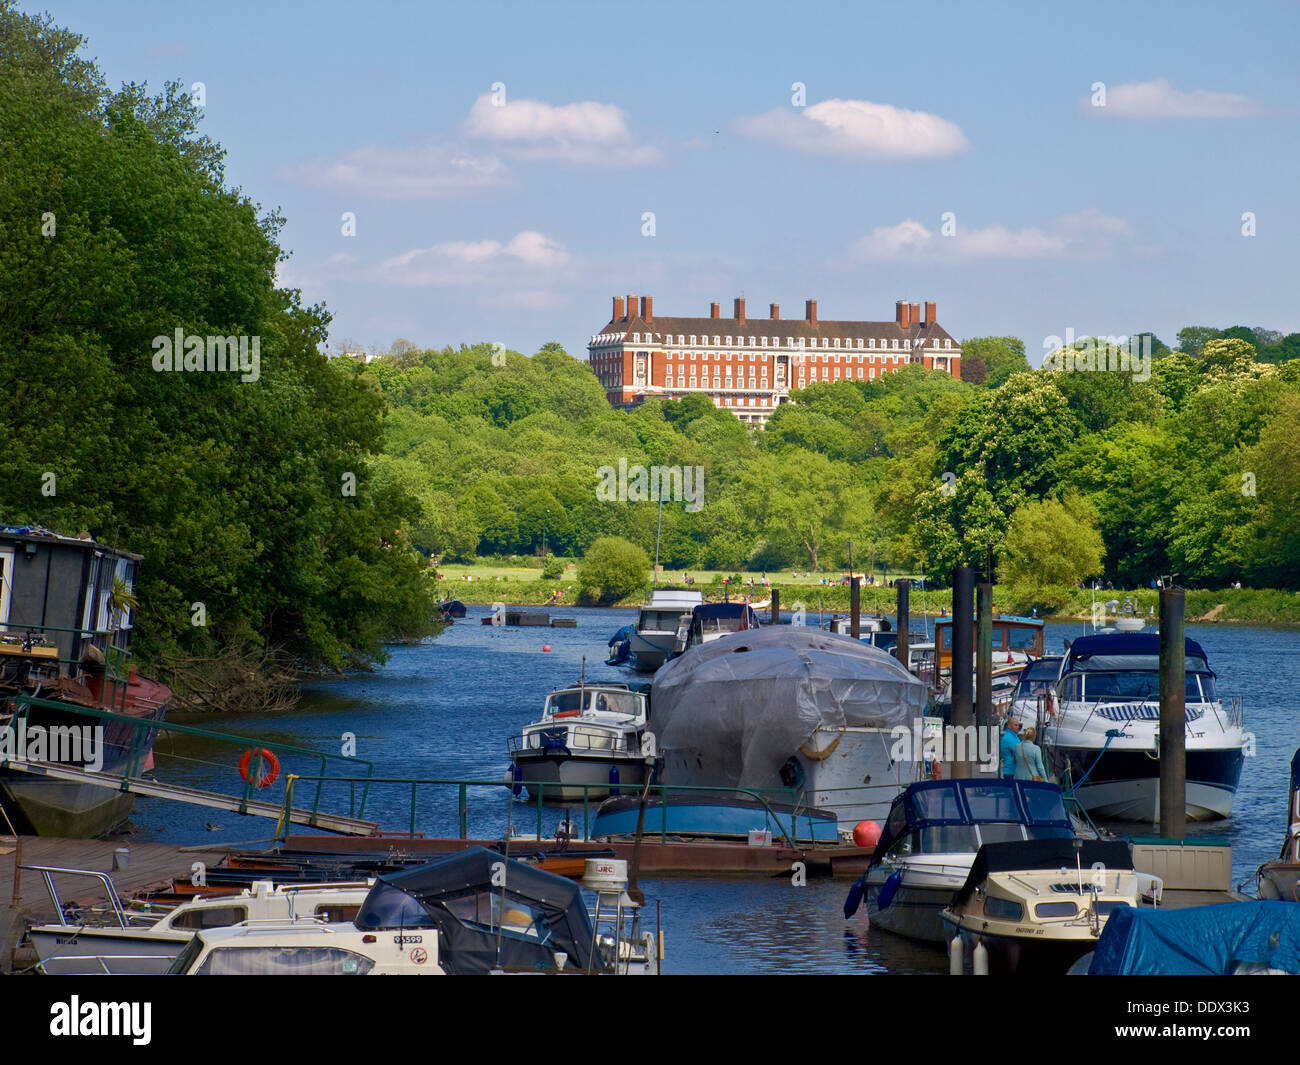 Star and Garter Home for Ex-servicemen on Richmond Hill. From the River Thames at Twickenham. - Stock Image